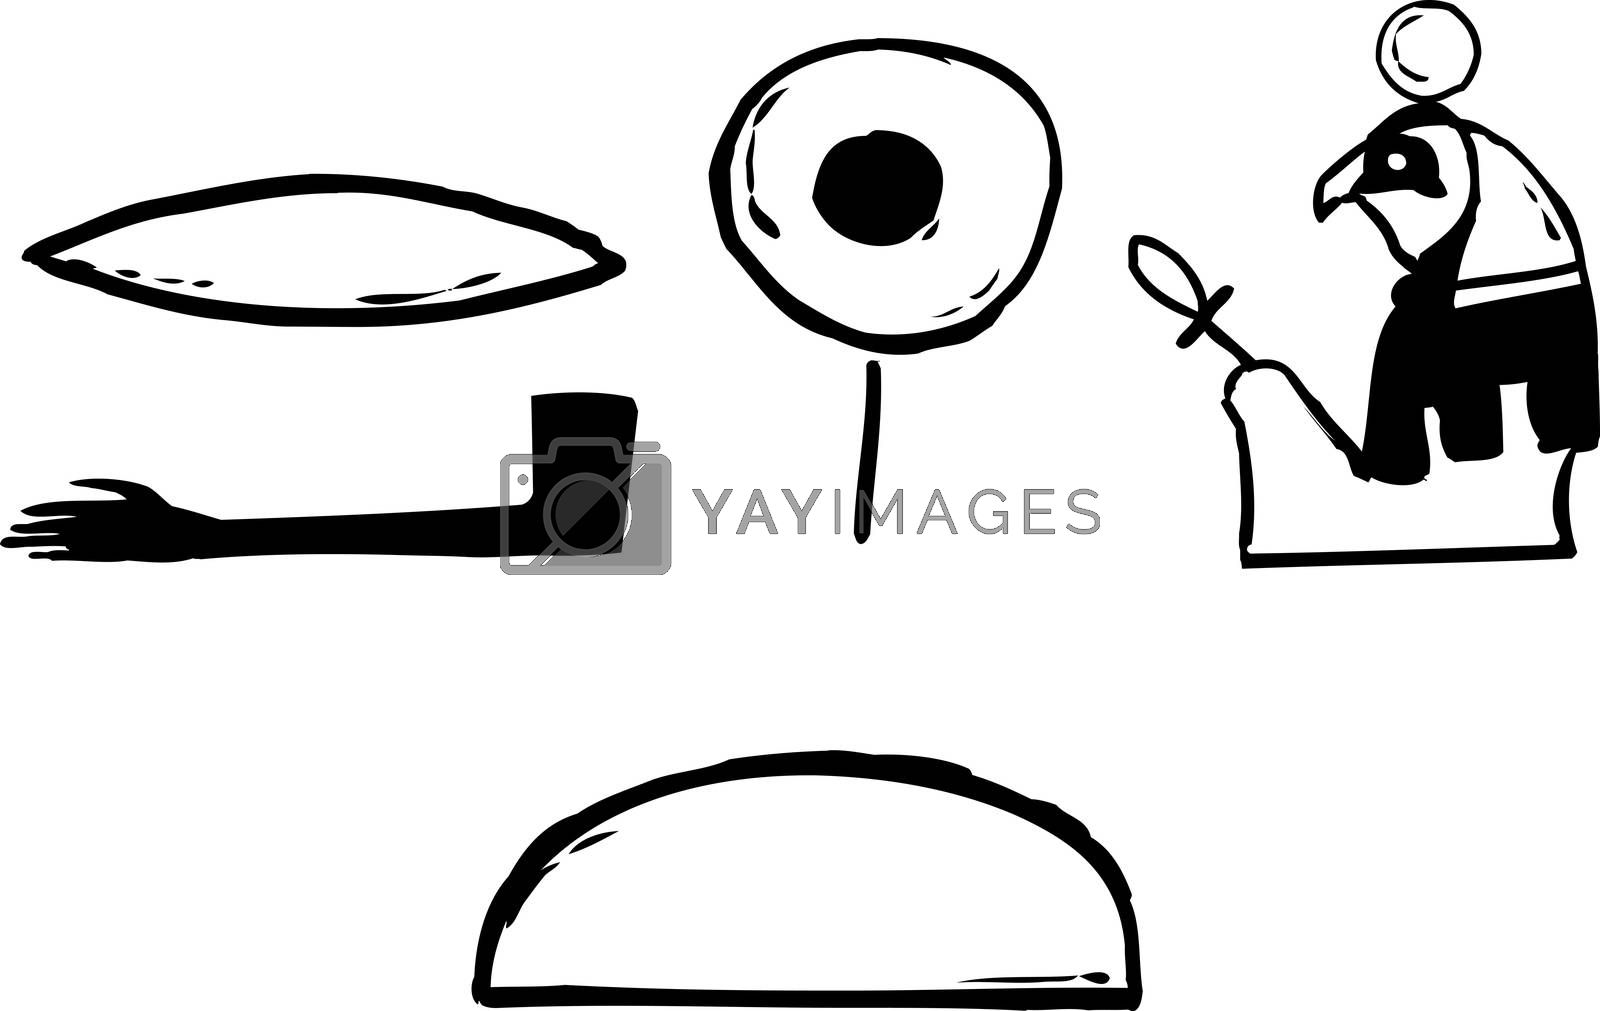 Outlined ancient Egyptian hieroglyphics of Rah and phonetics over isolated white background